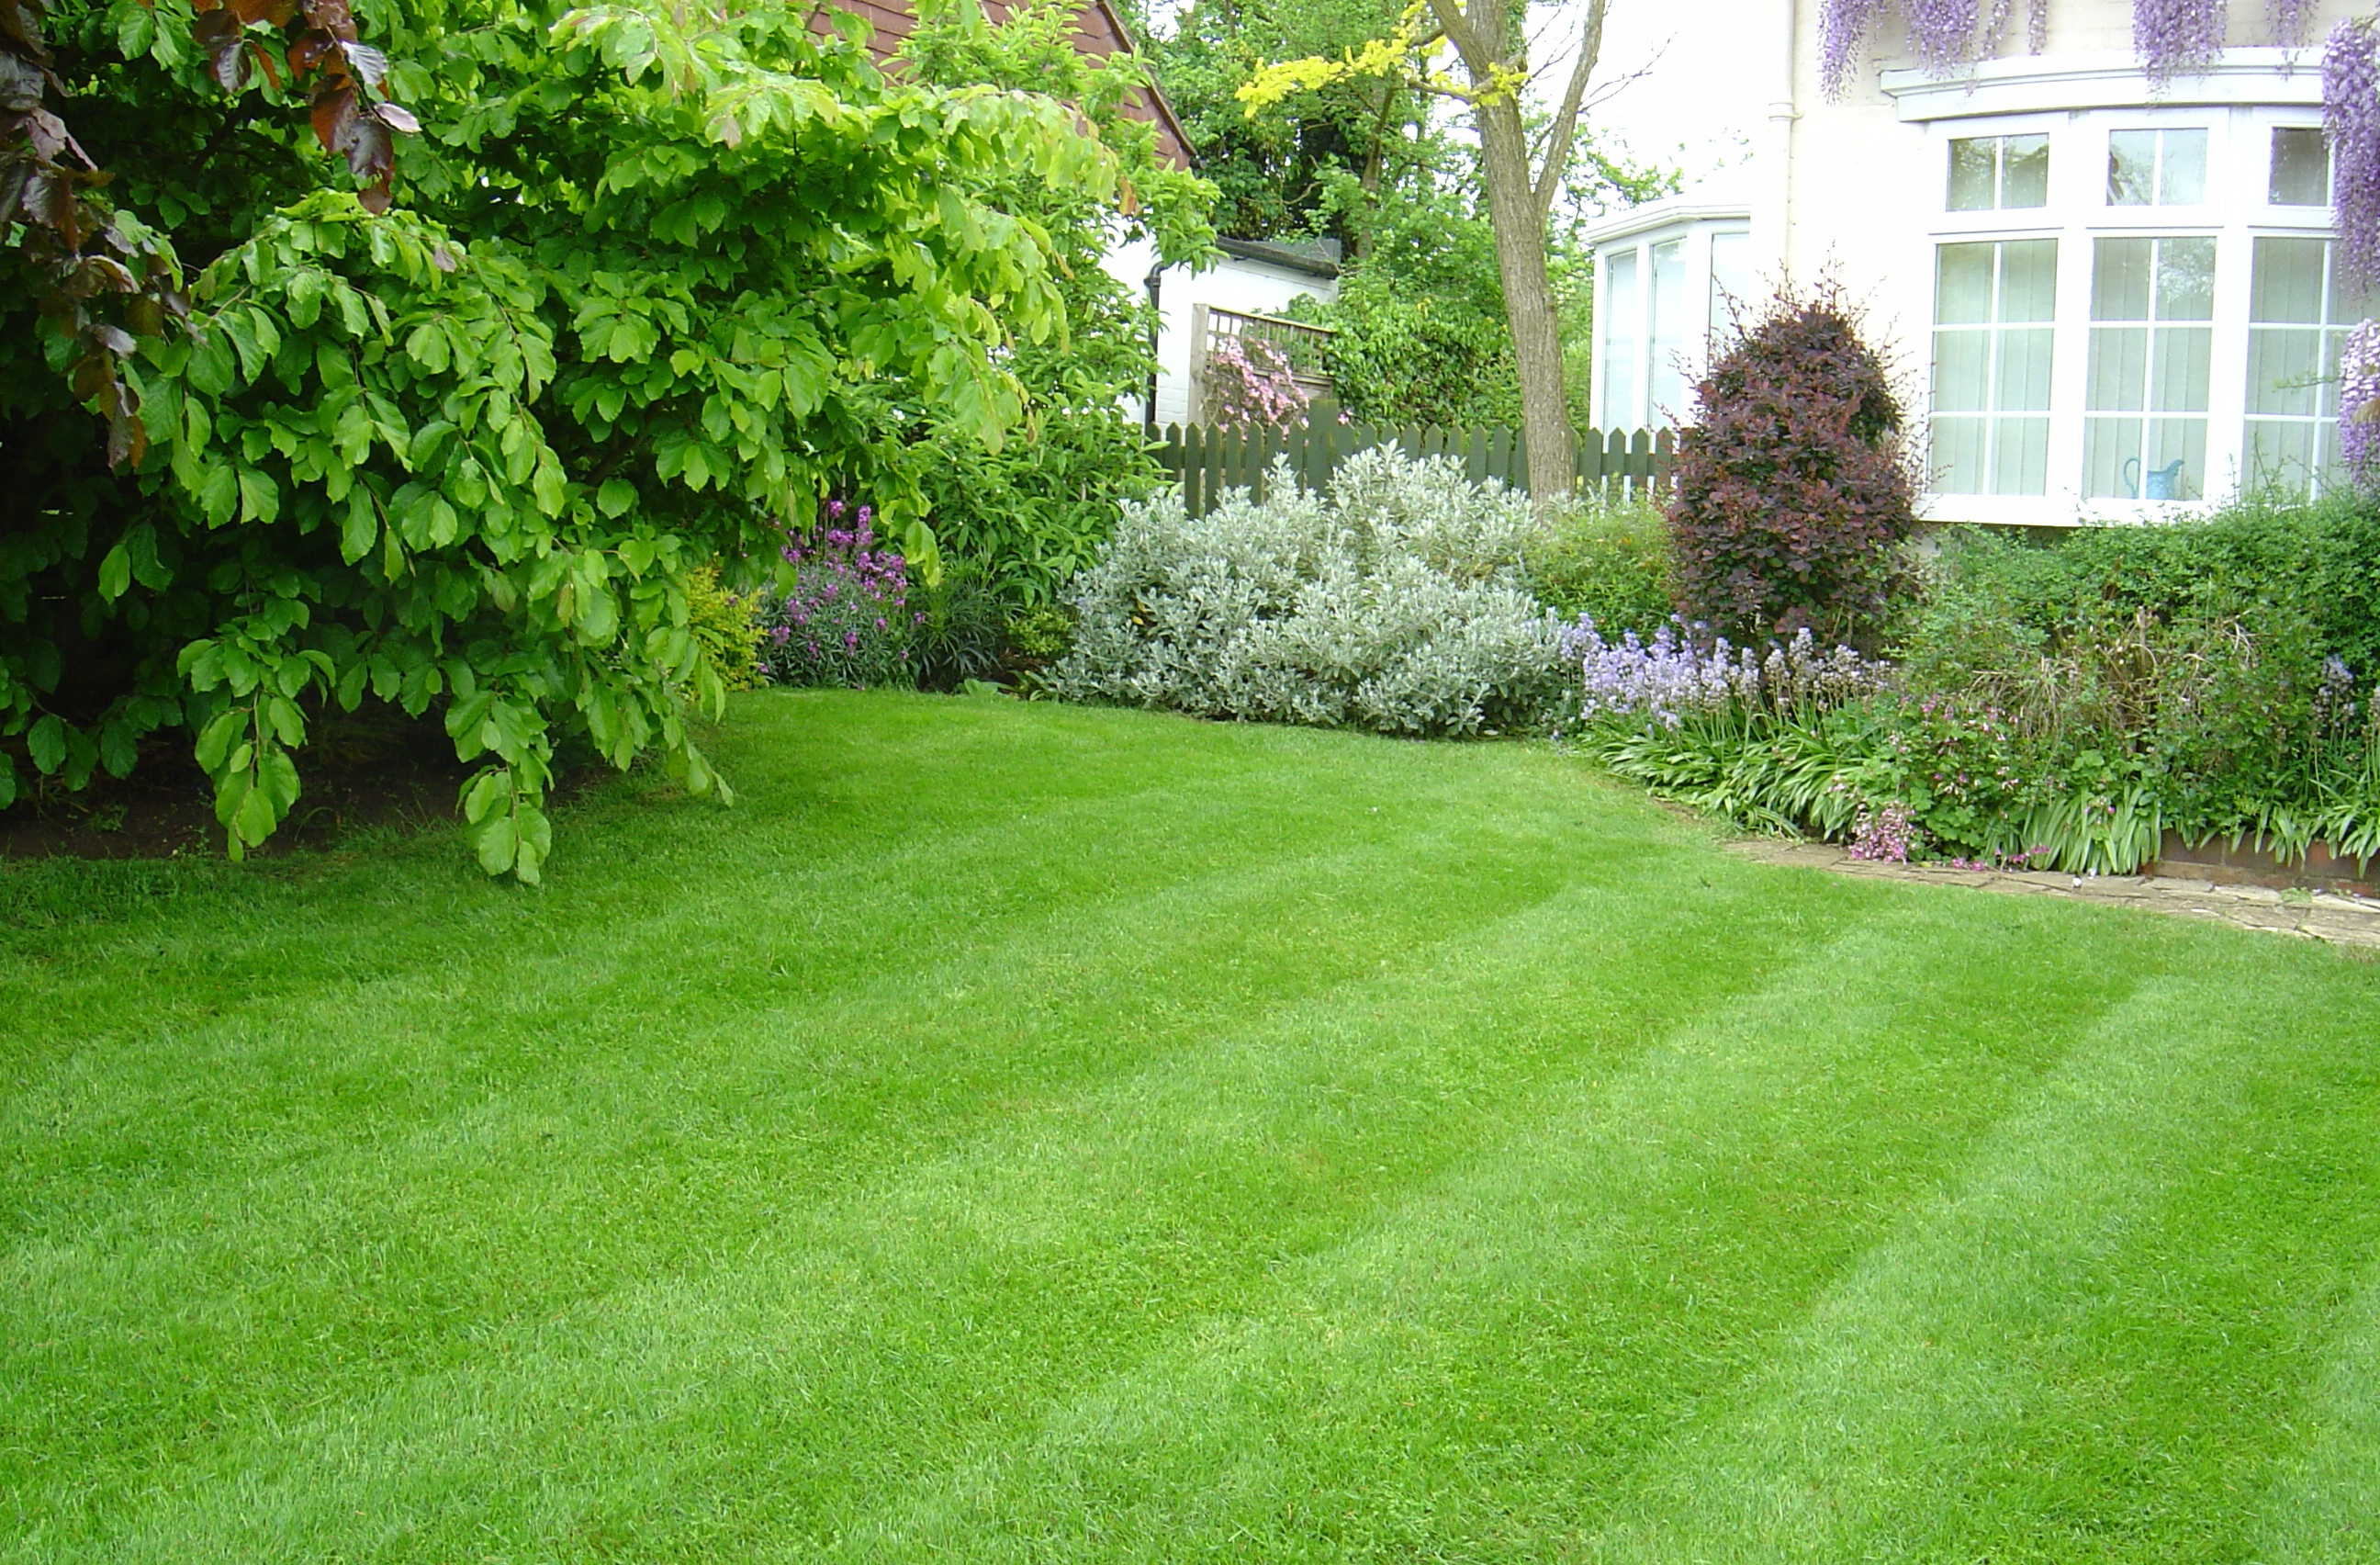 Lawn Care Vertopia Gardens: yard and garden